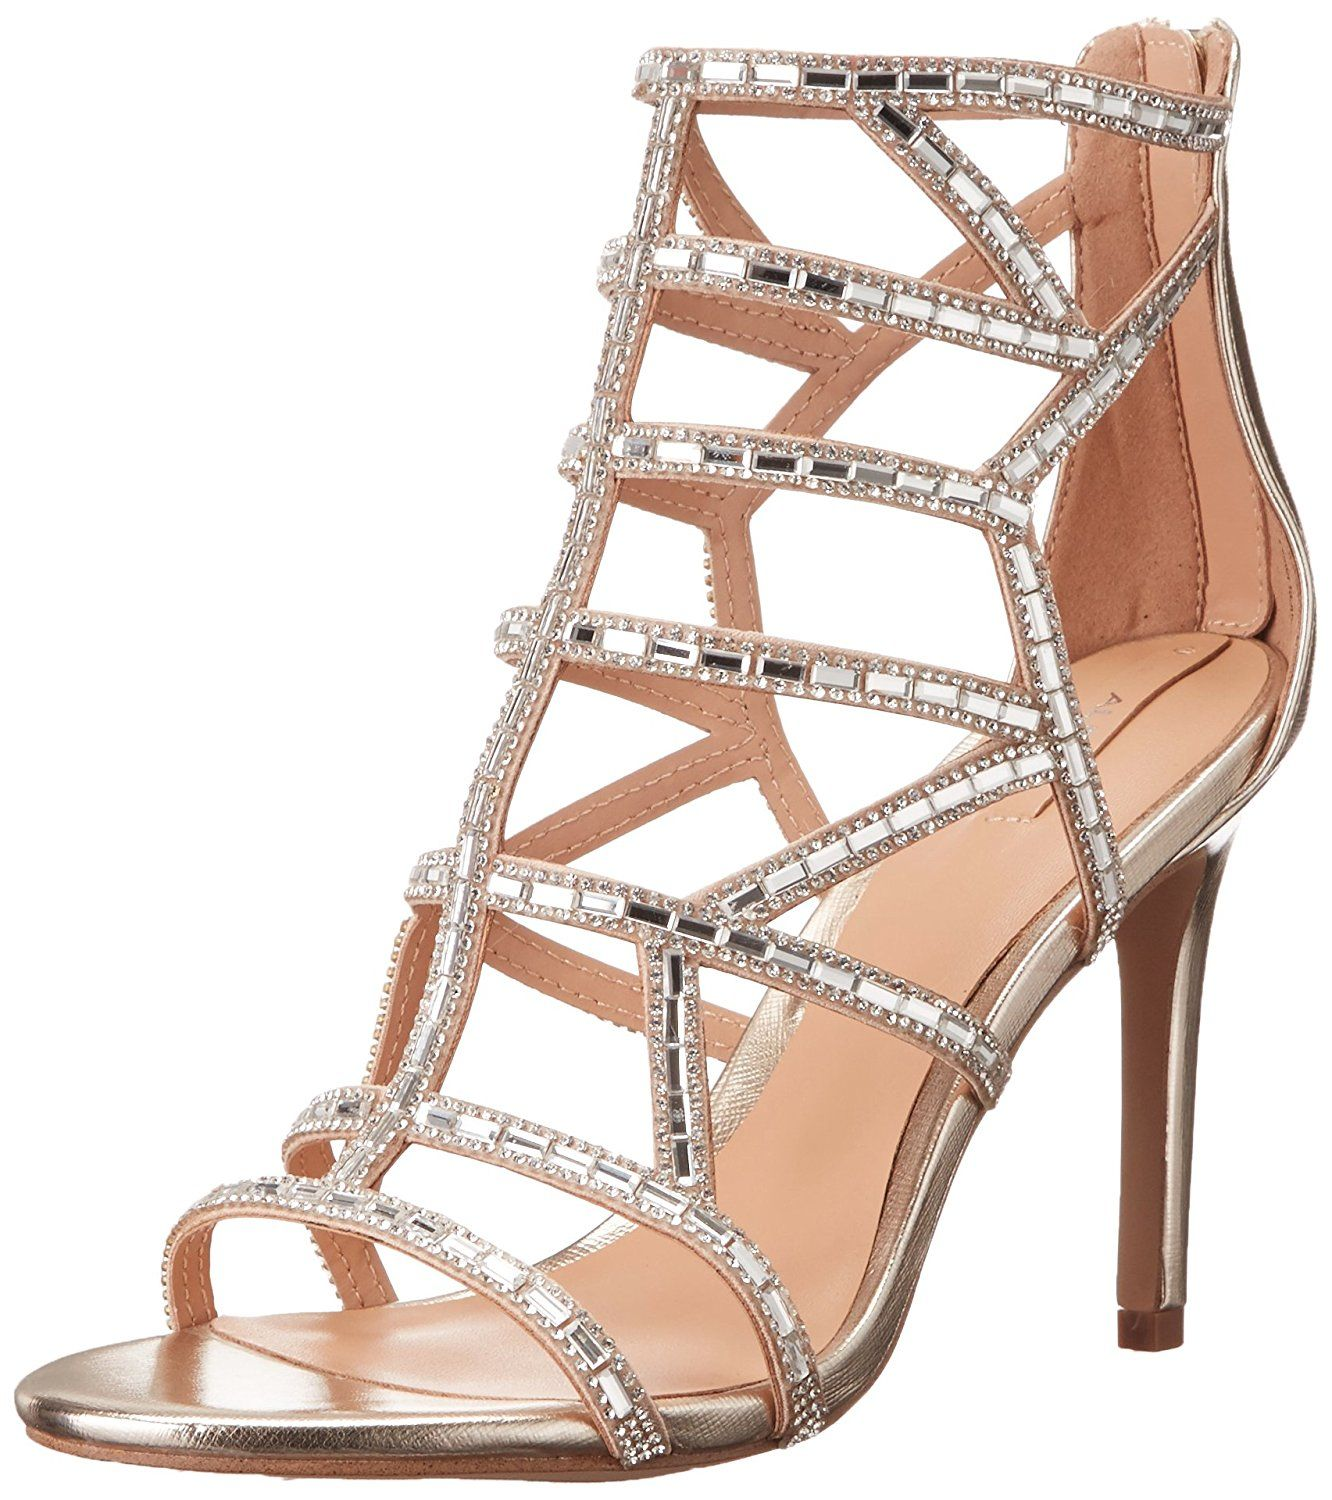 155316c75593 Aldo Women s Norta Dress Sandal   Find out more details by clicking the  image   Block heel sandals